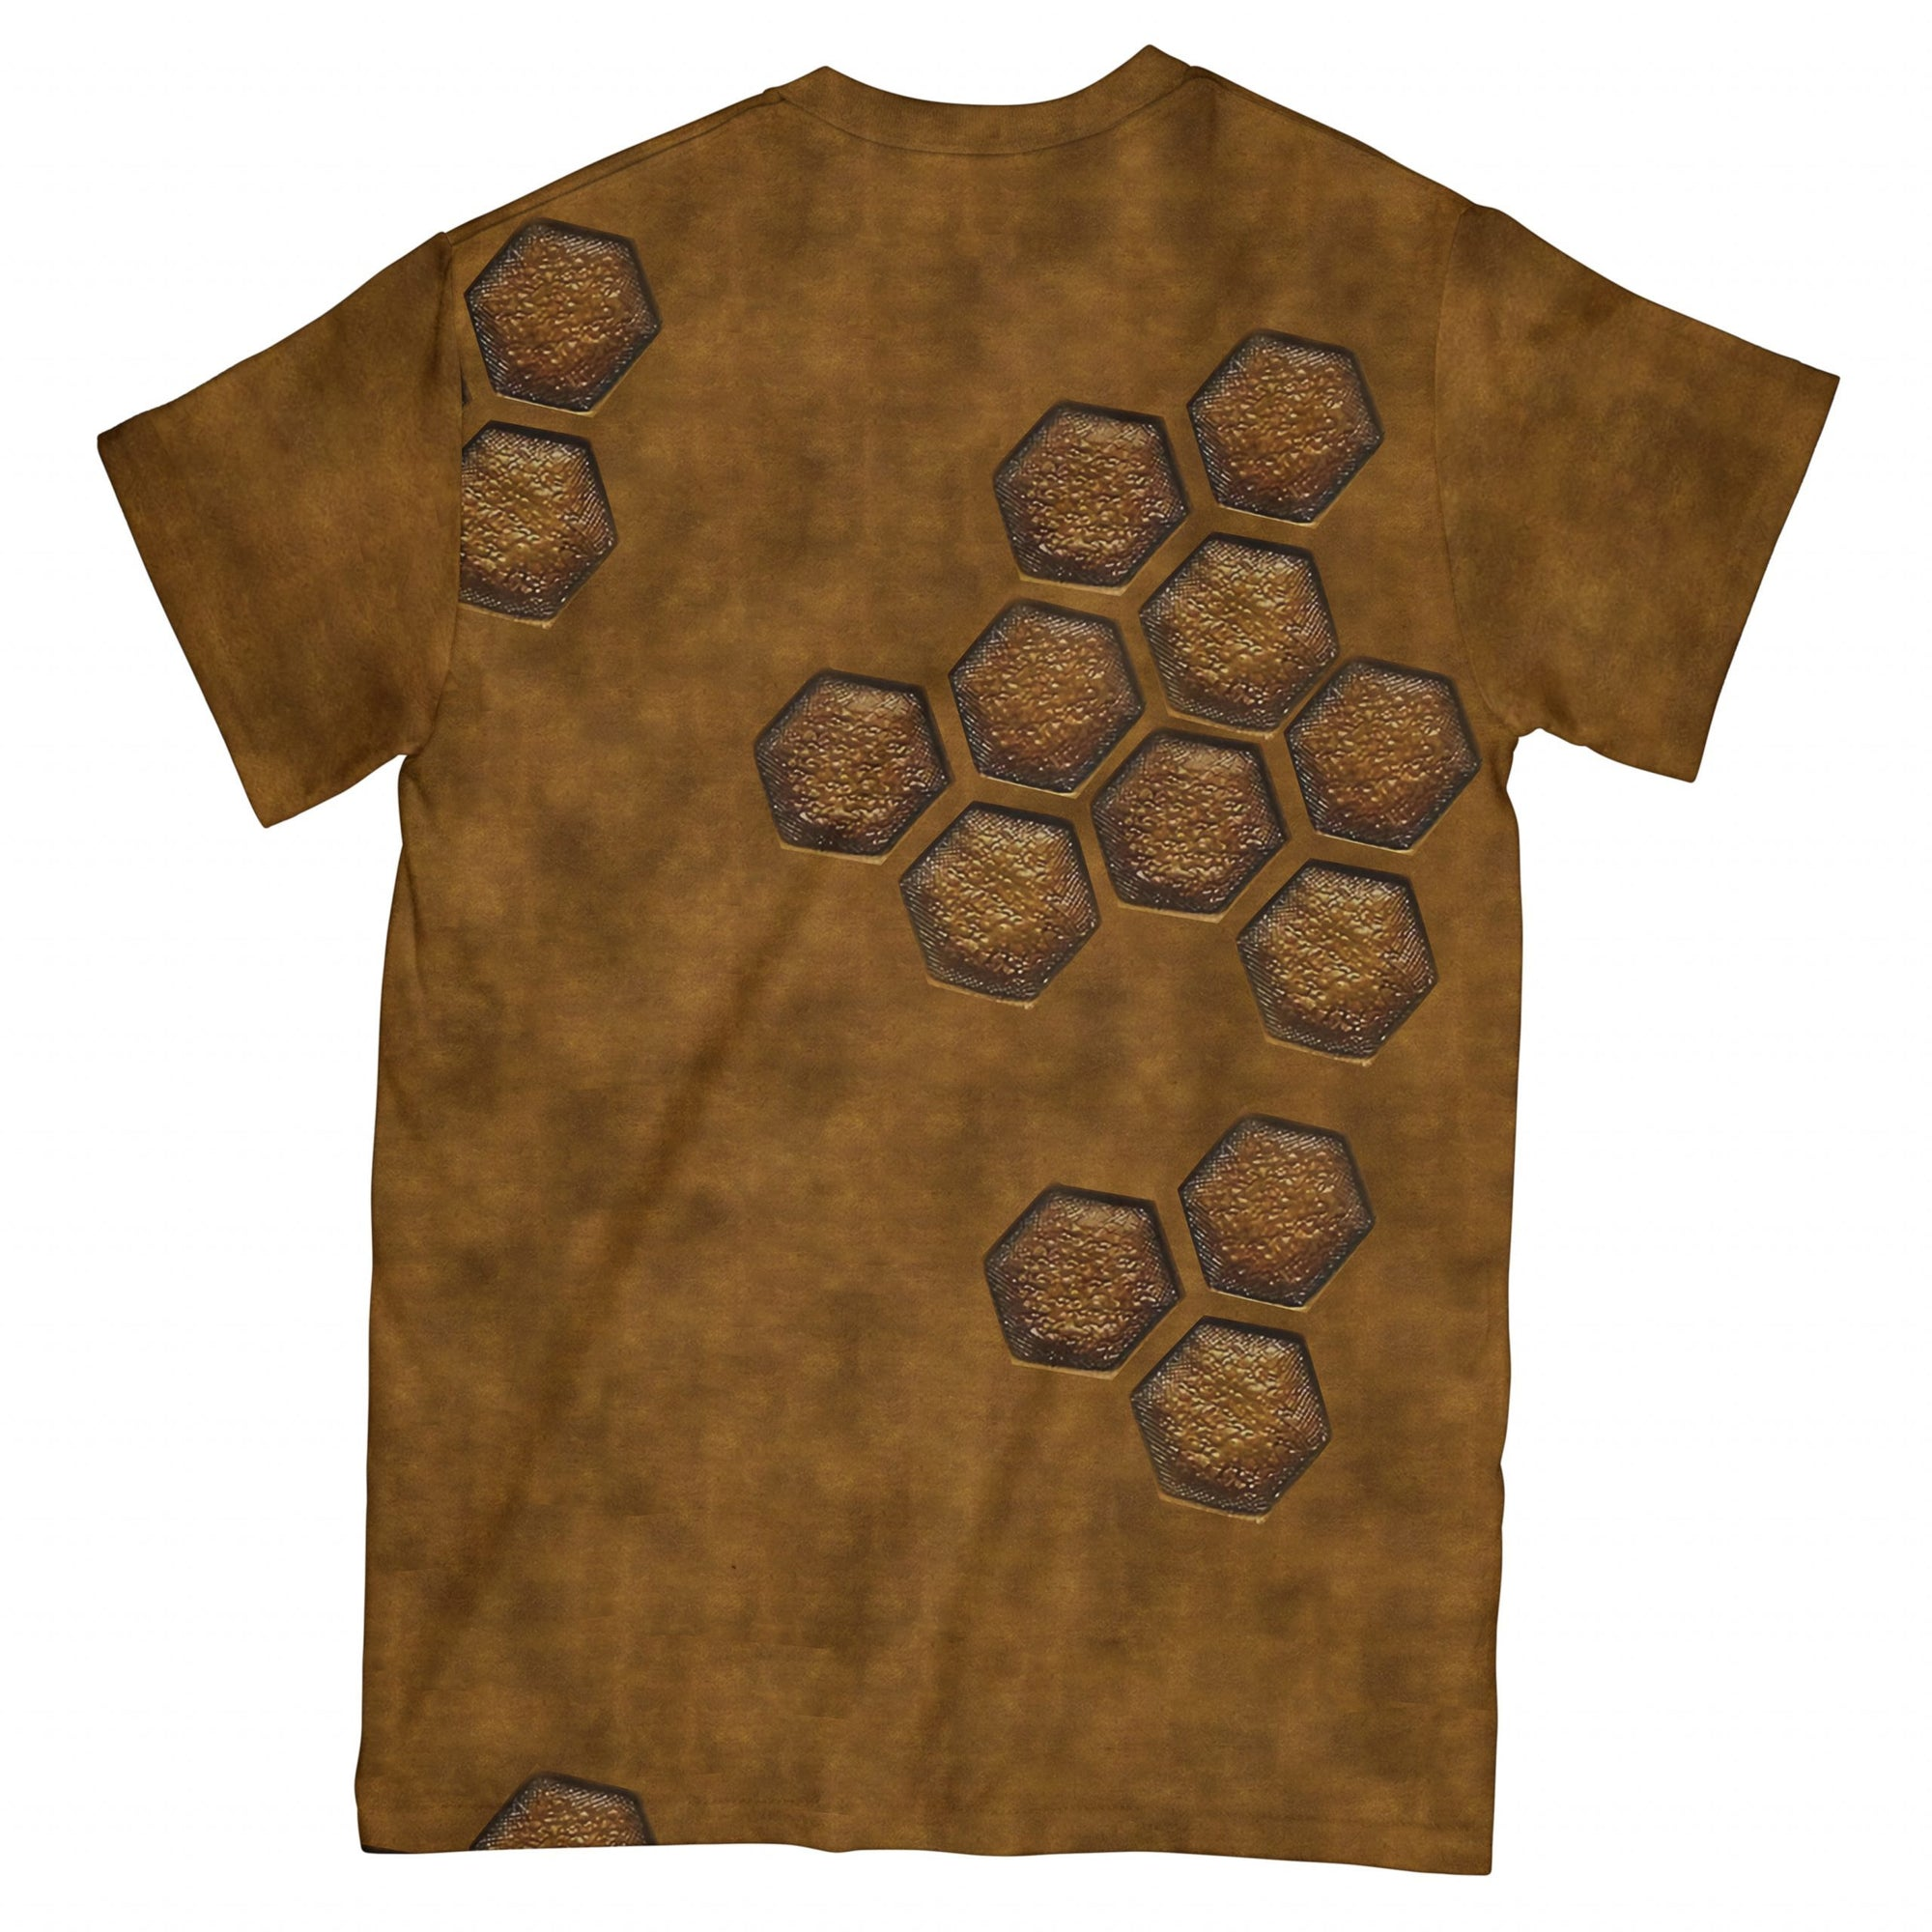 Honey Bee 3D EZ05 2003 All Over T-shirt